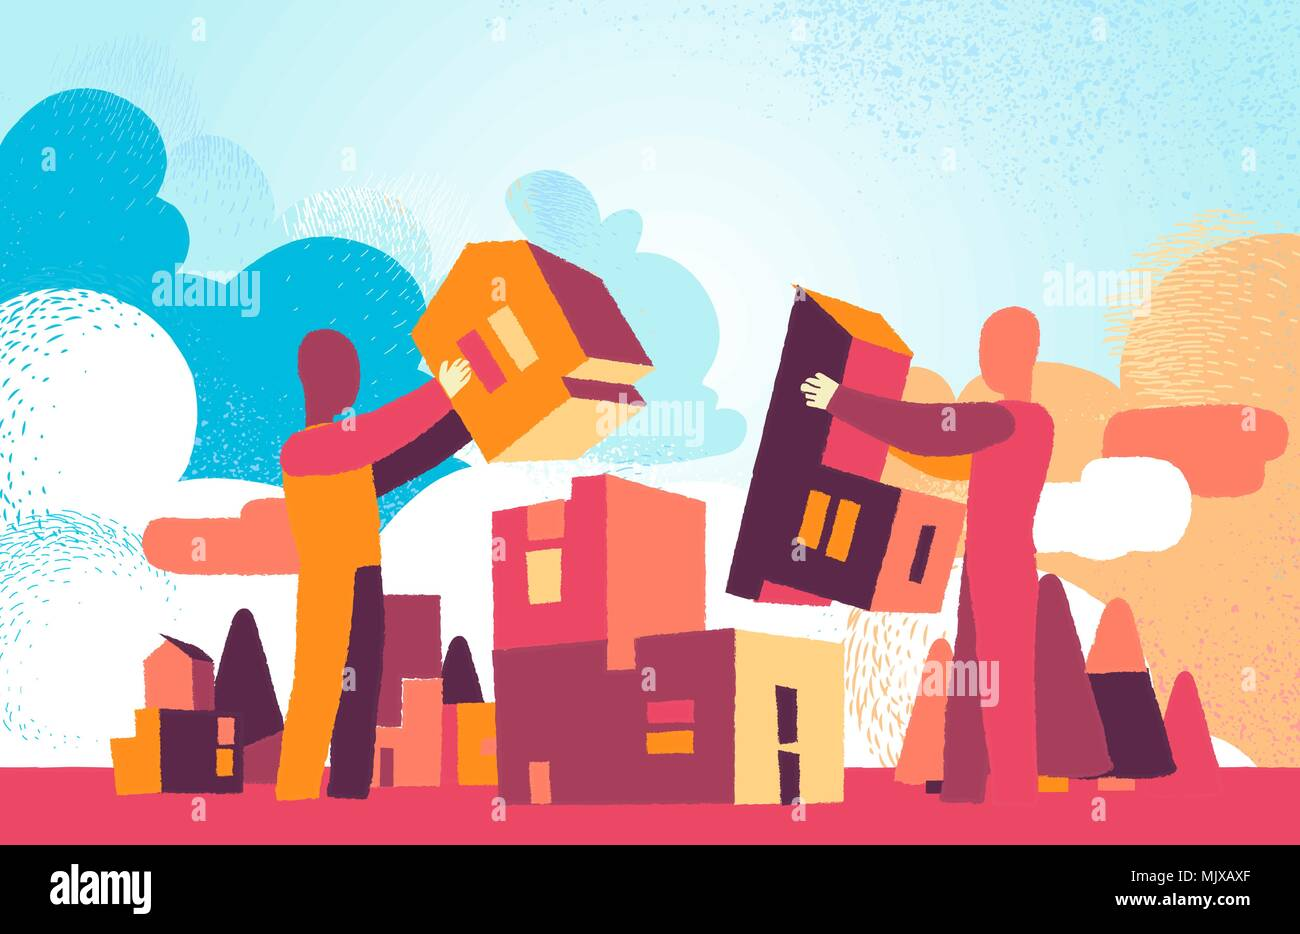 Two man work together to building the city of tomorrow - Stock Vector